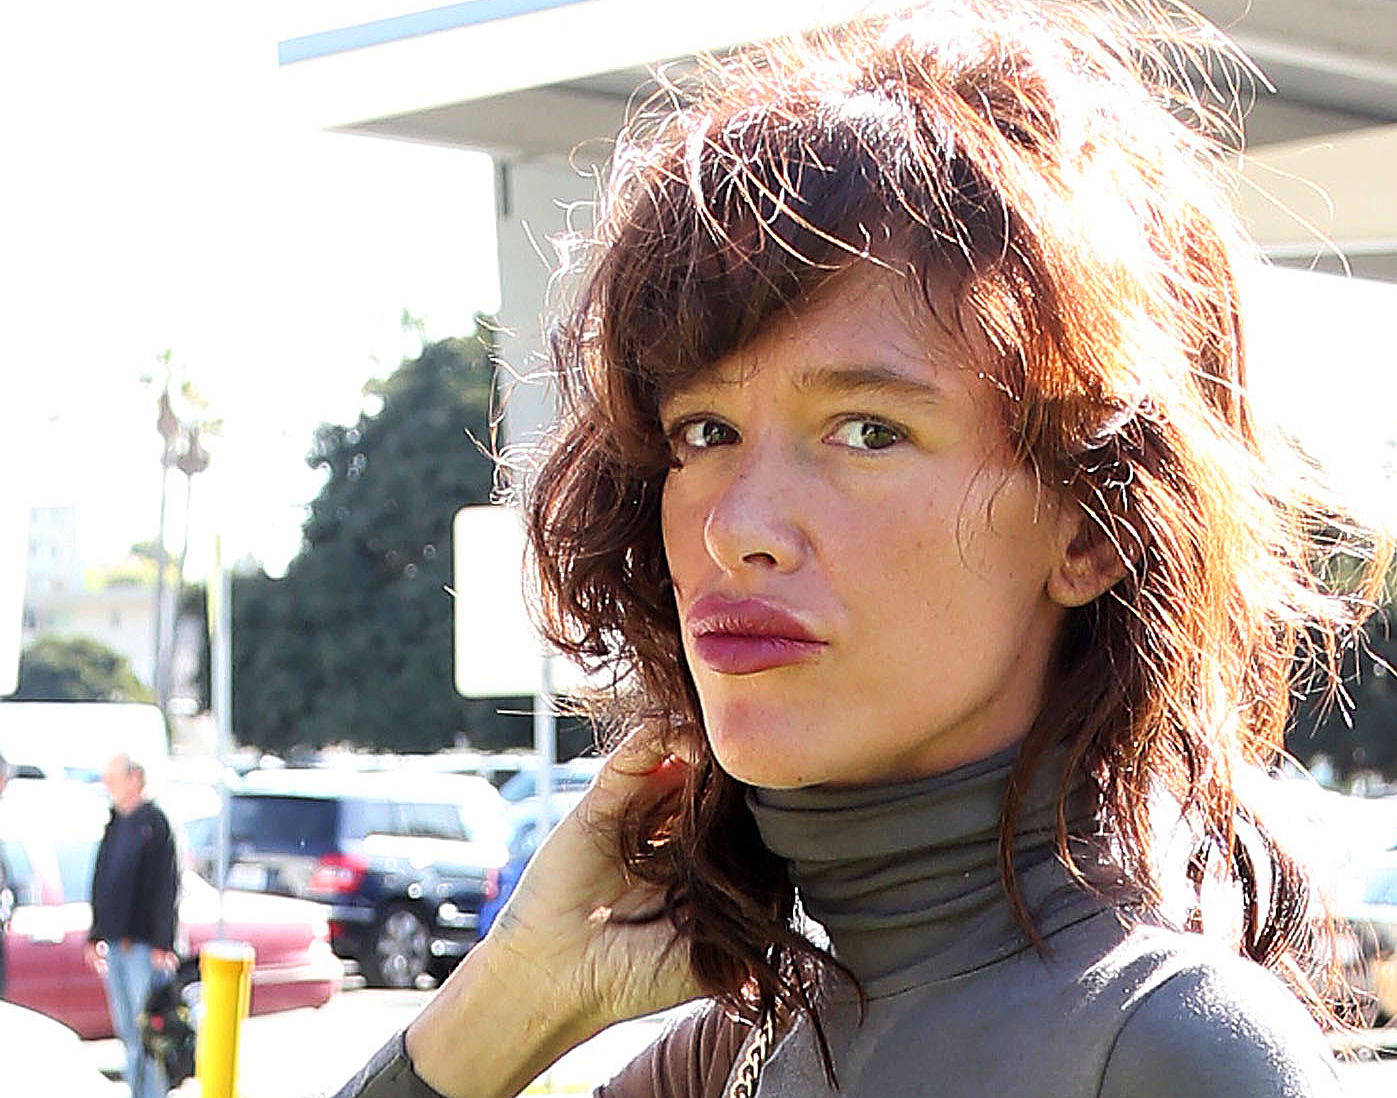 Actress Paz de la Huerta makes an appearance at the Santa Monica Courthouse on February 23, 2016 in Santa Monica, California. (Frederick M. Brown/Getty Images)